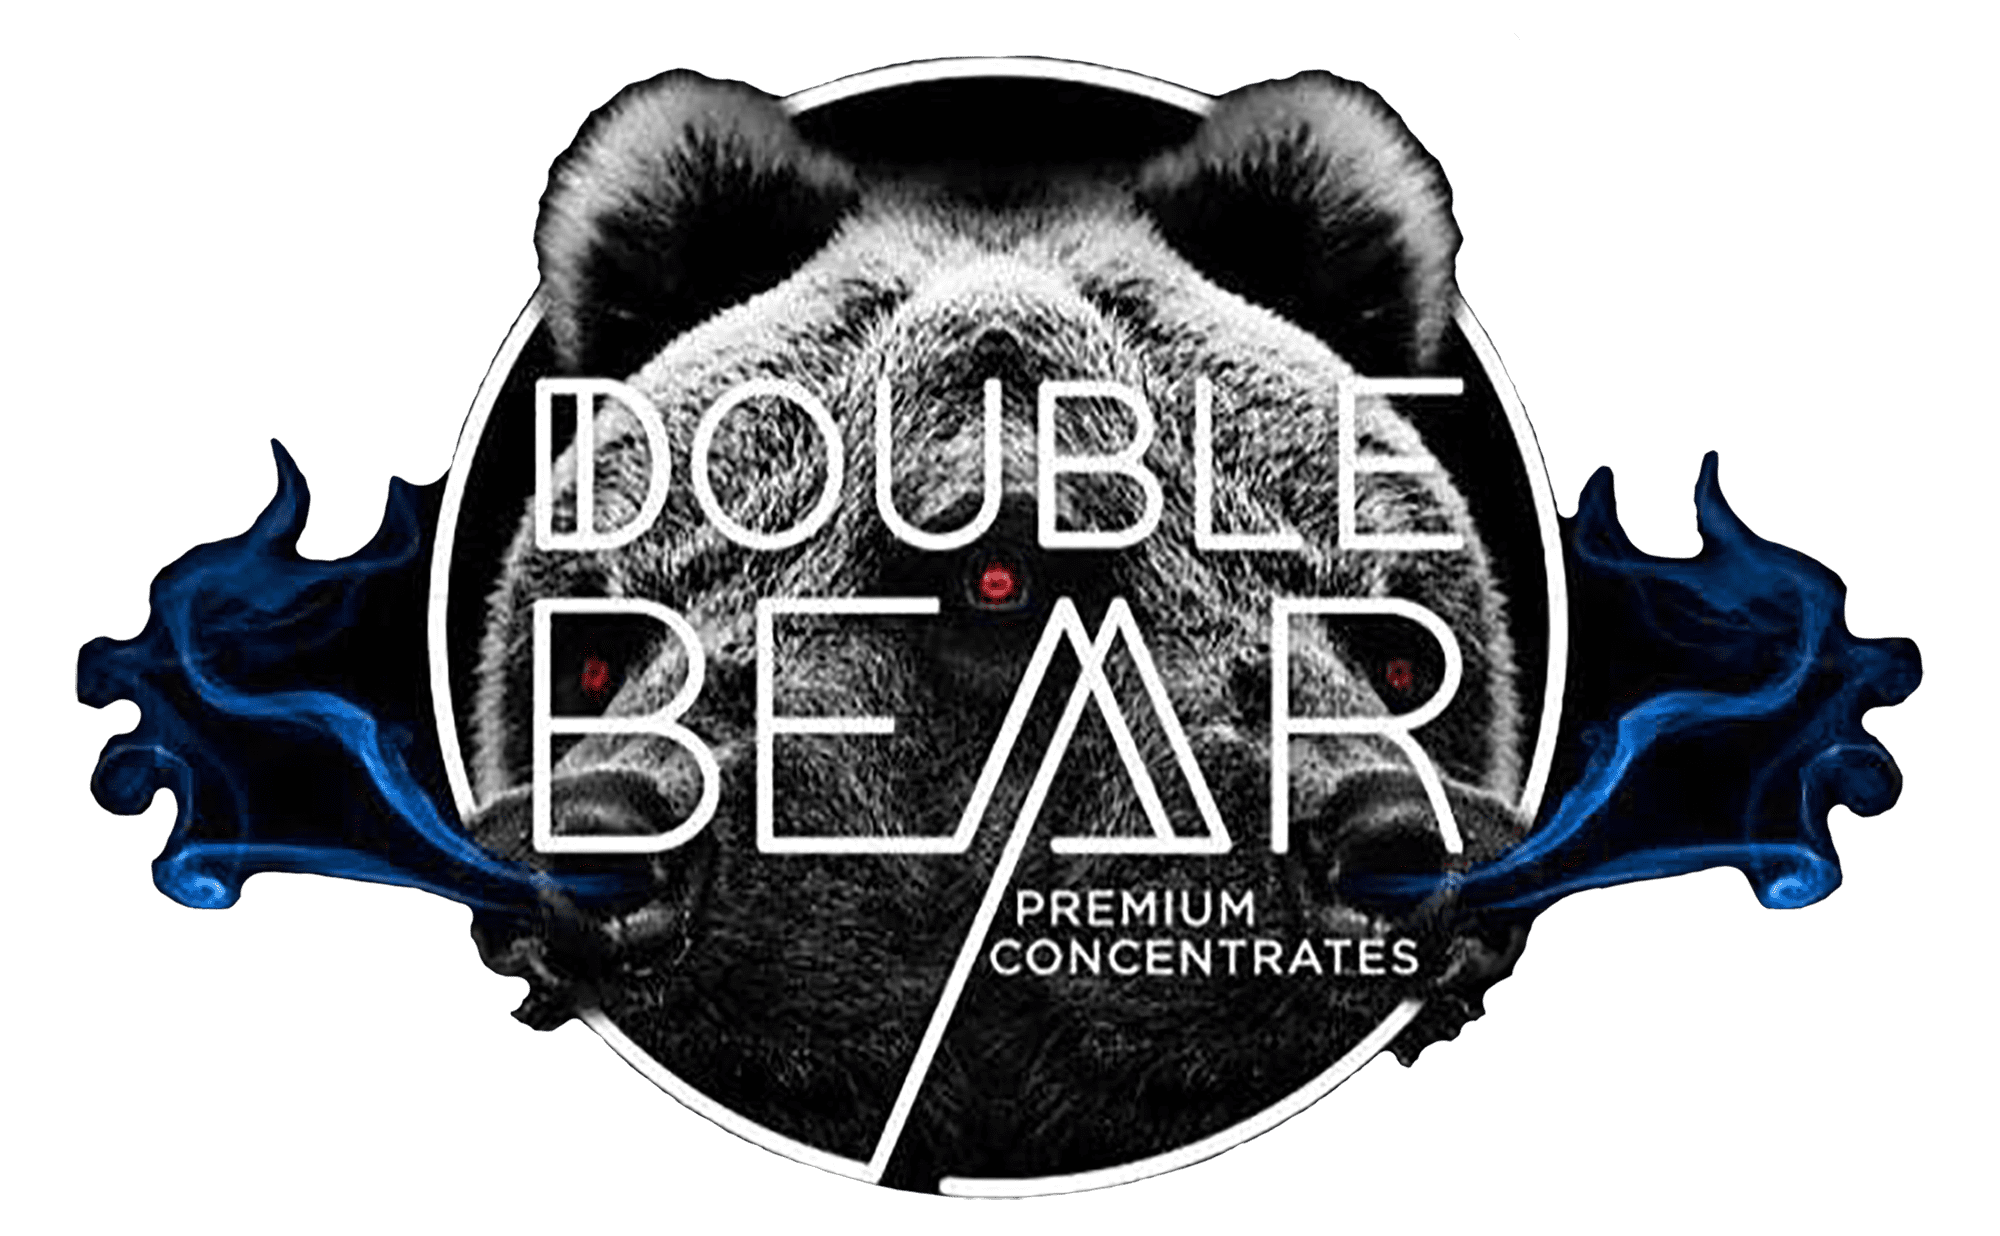 Terrapin Double Bear Concentrates